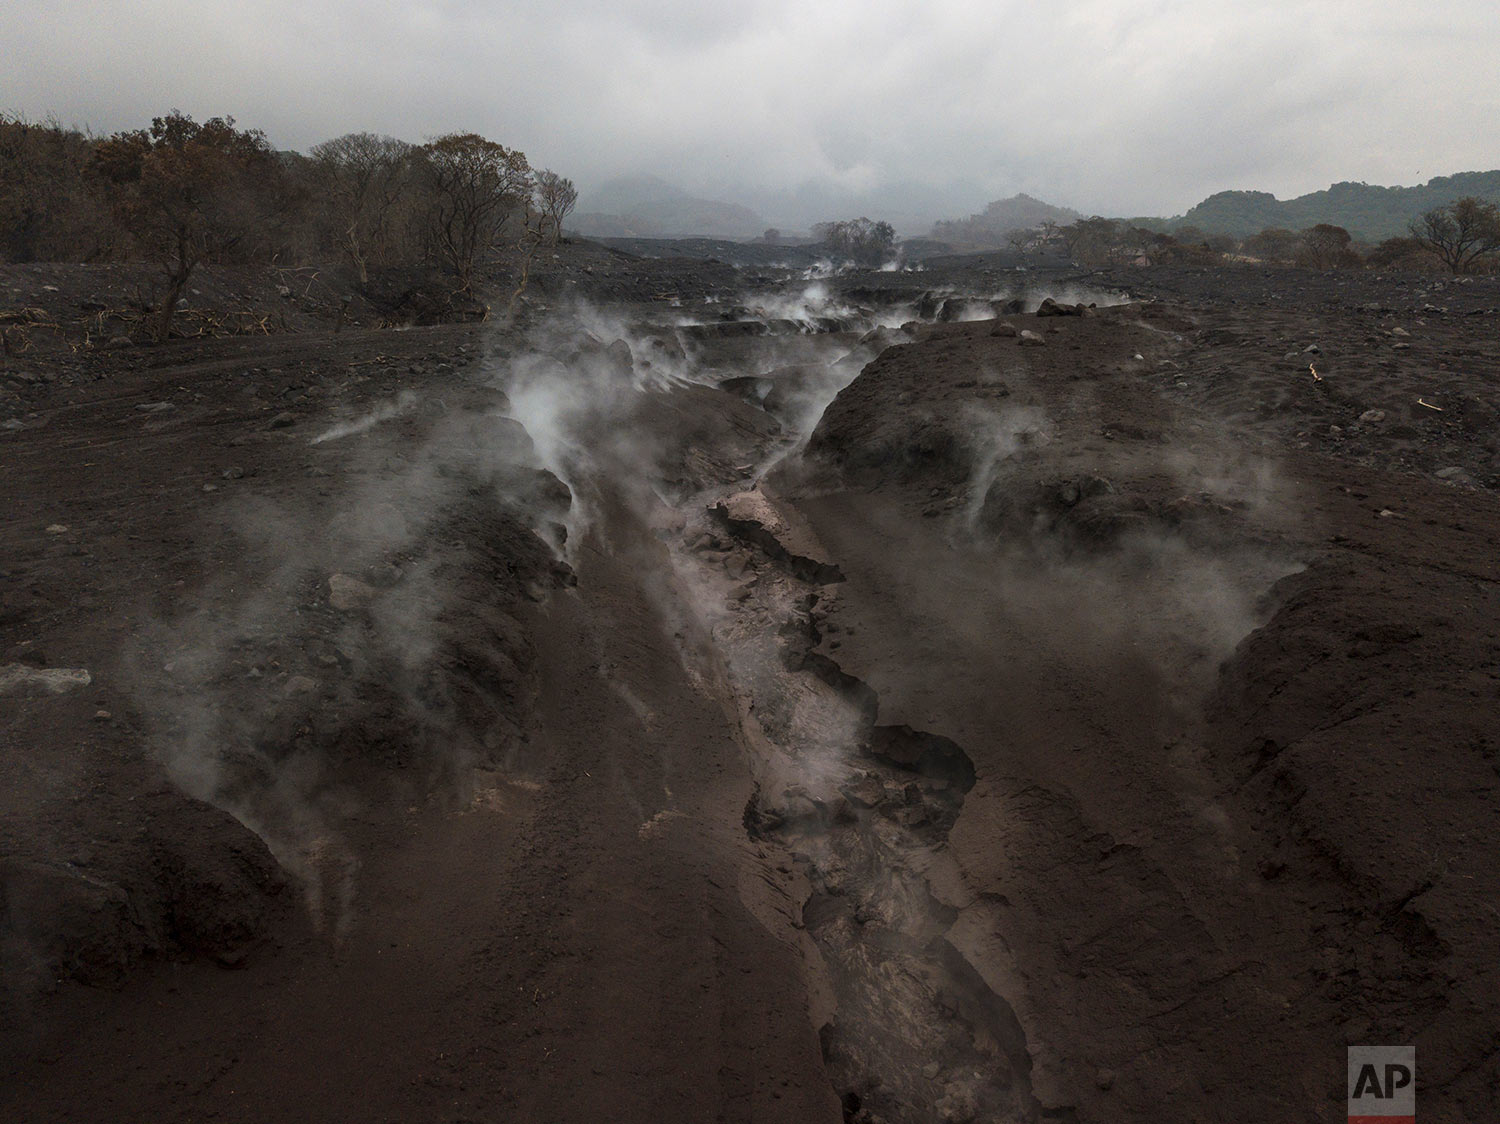 In this June 15, 2018 photo, steam rises from the charred earth after a heavy rain along the path of destruction in the aftermath of the Volcano of Fire's eruption in San Miguel Los Lotes, Guatemala. (AP Photo/Rodrigo Abd)